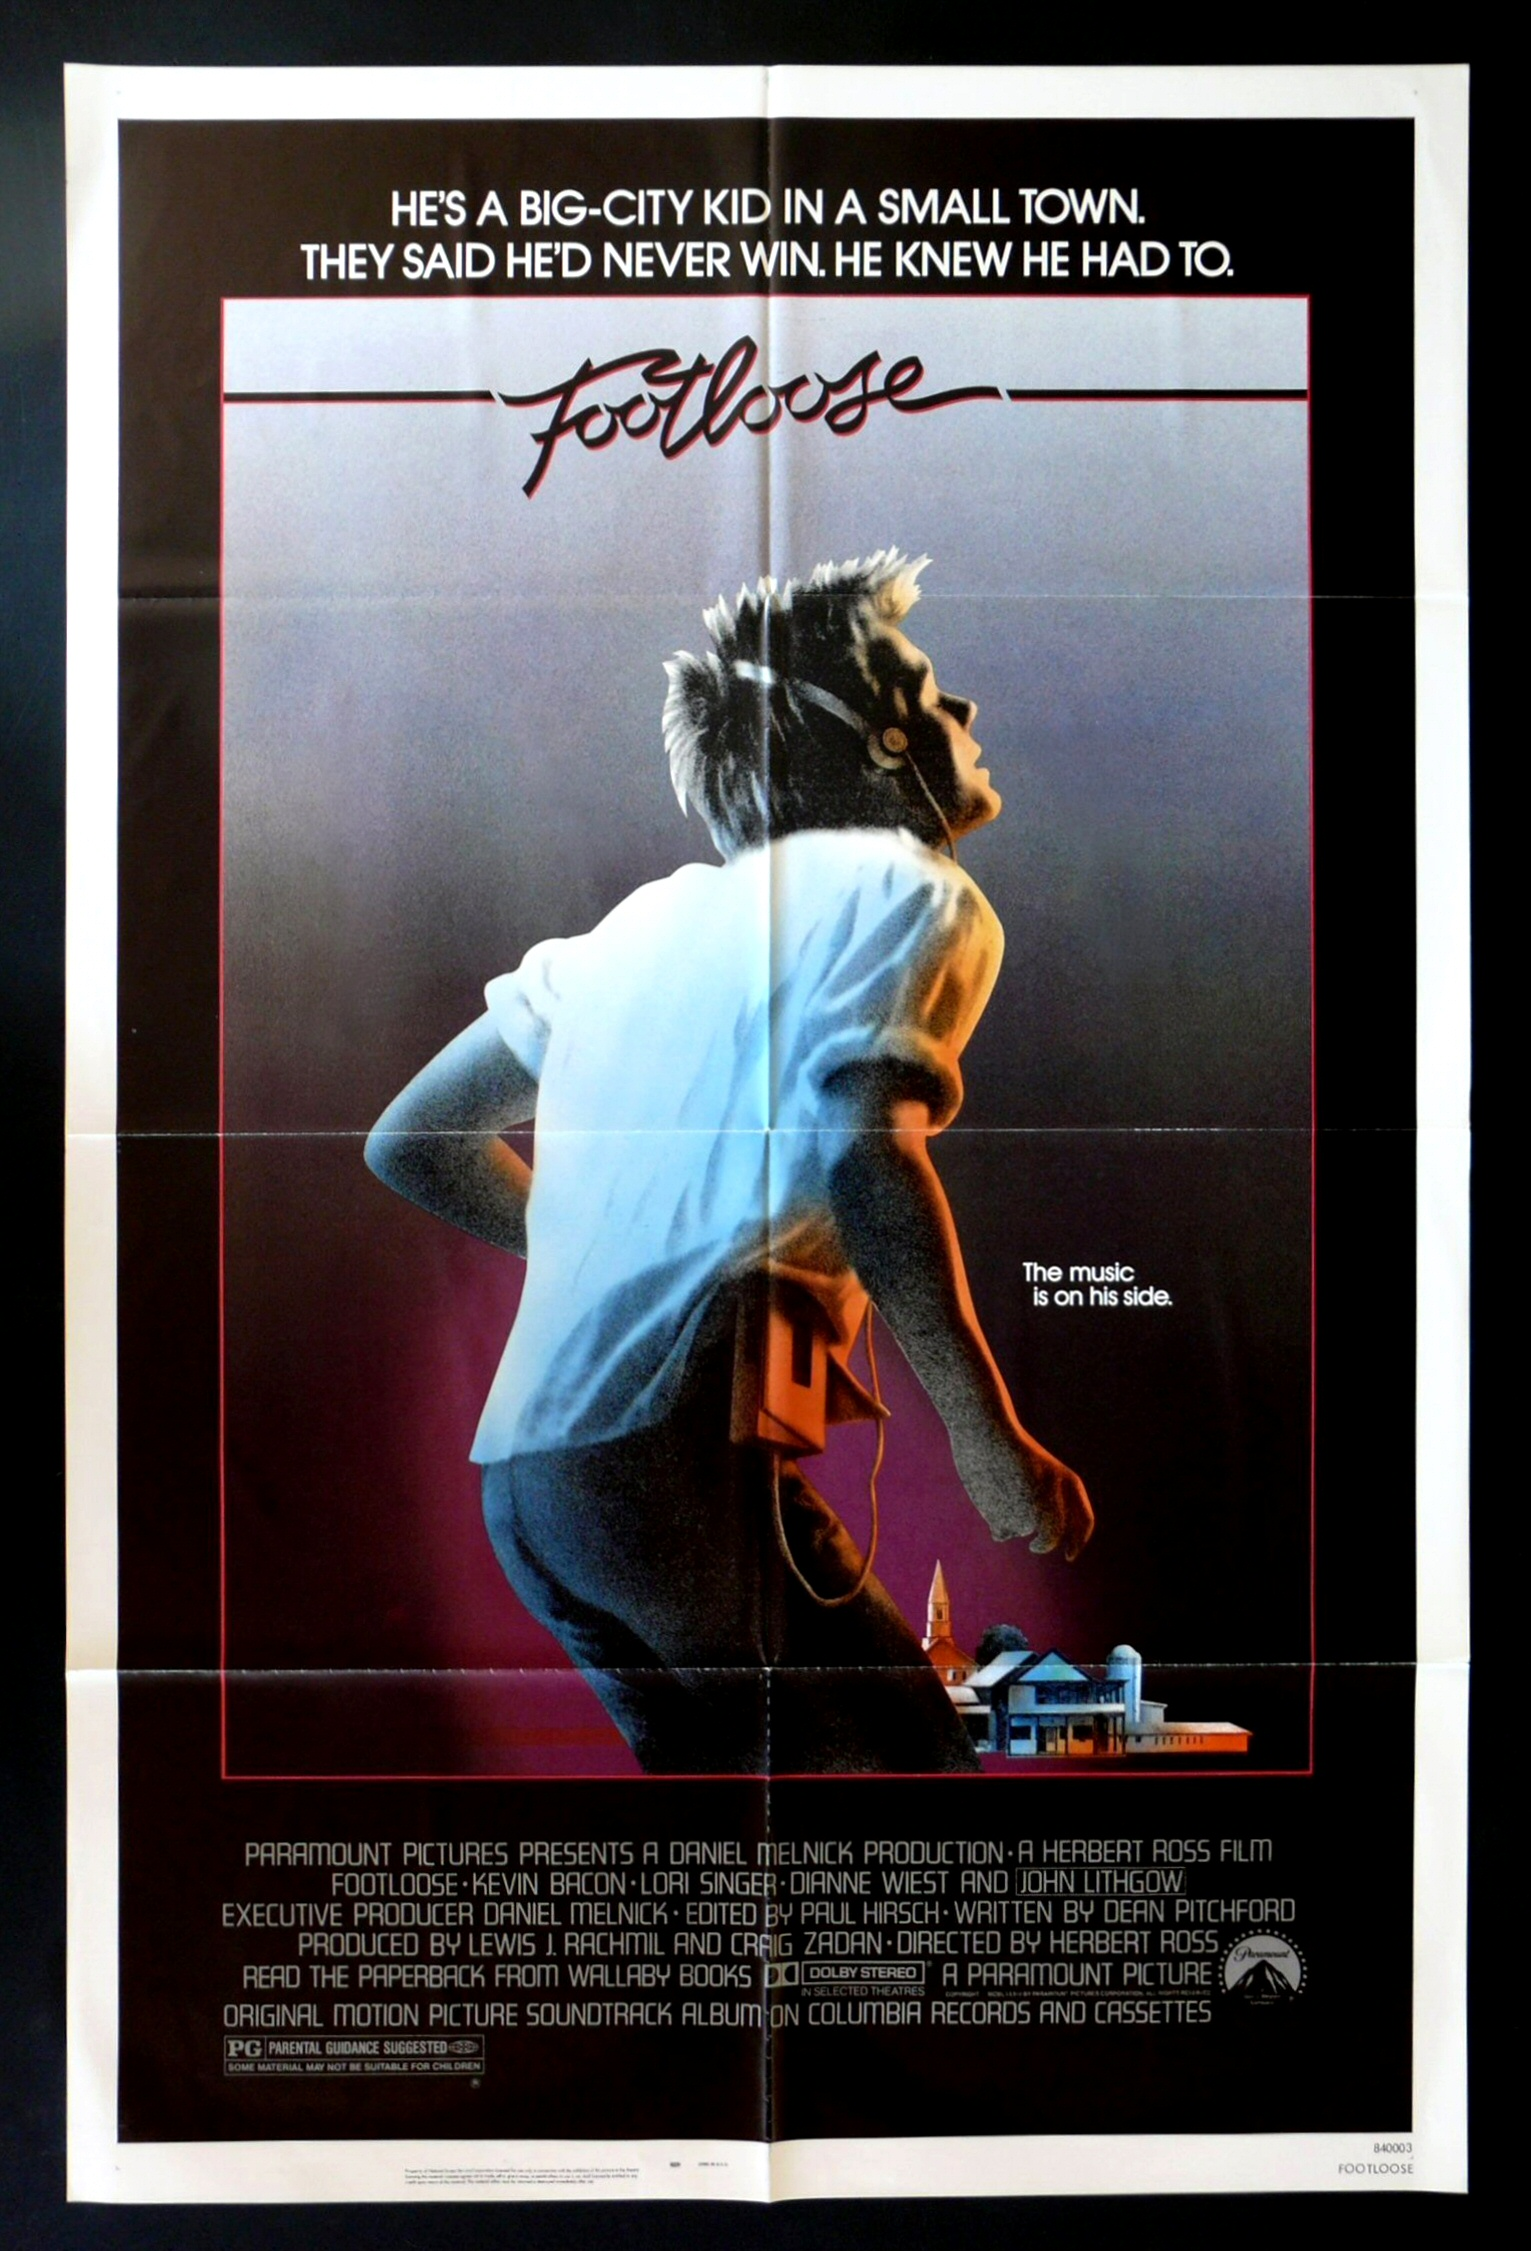 Details about FOOTLOOSE   1SH ORIG MOVIE POSTER 1984 DANCE DANCINGFootloose Movie Poster 1984